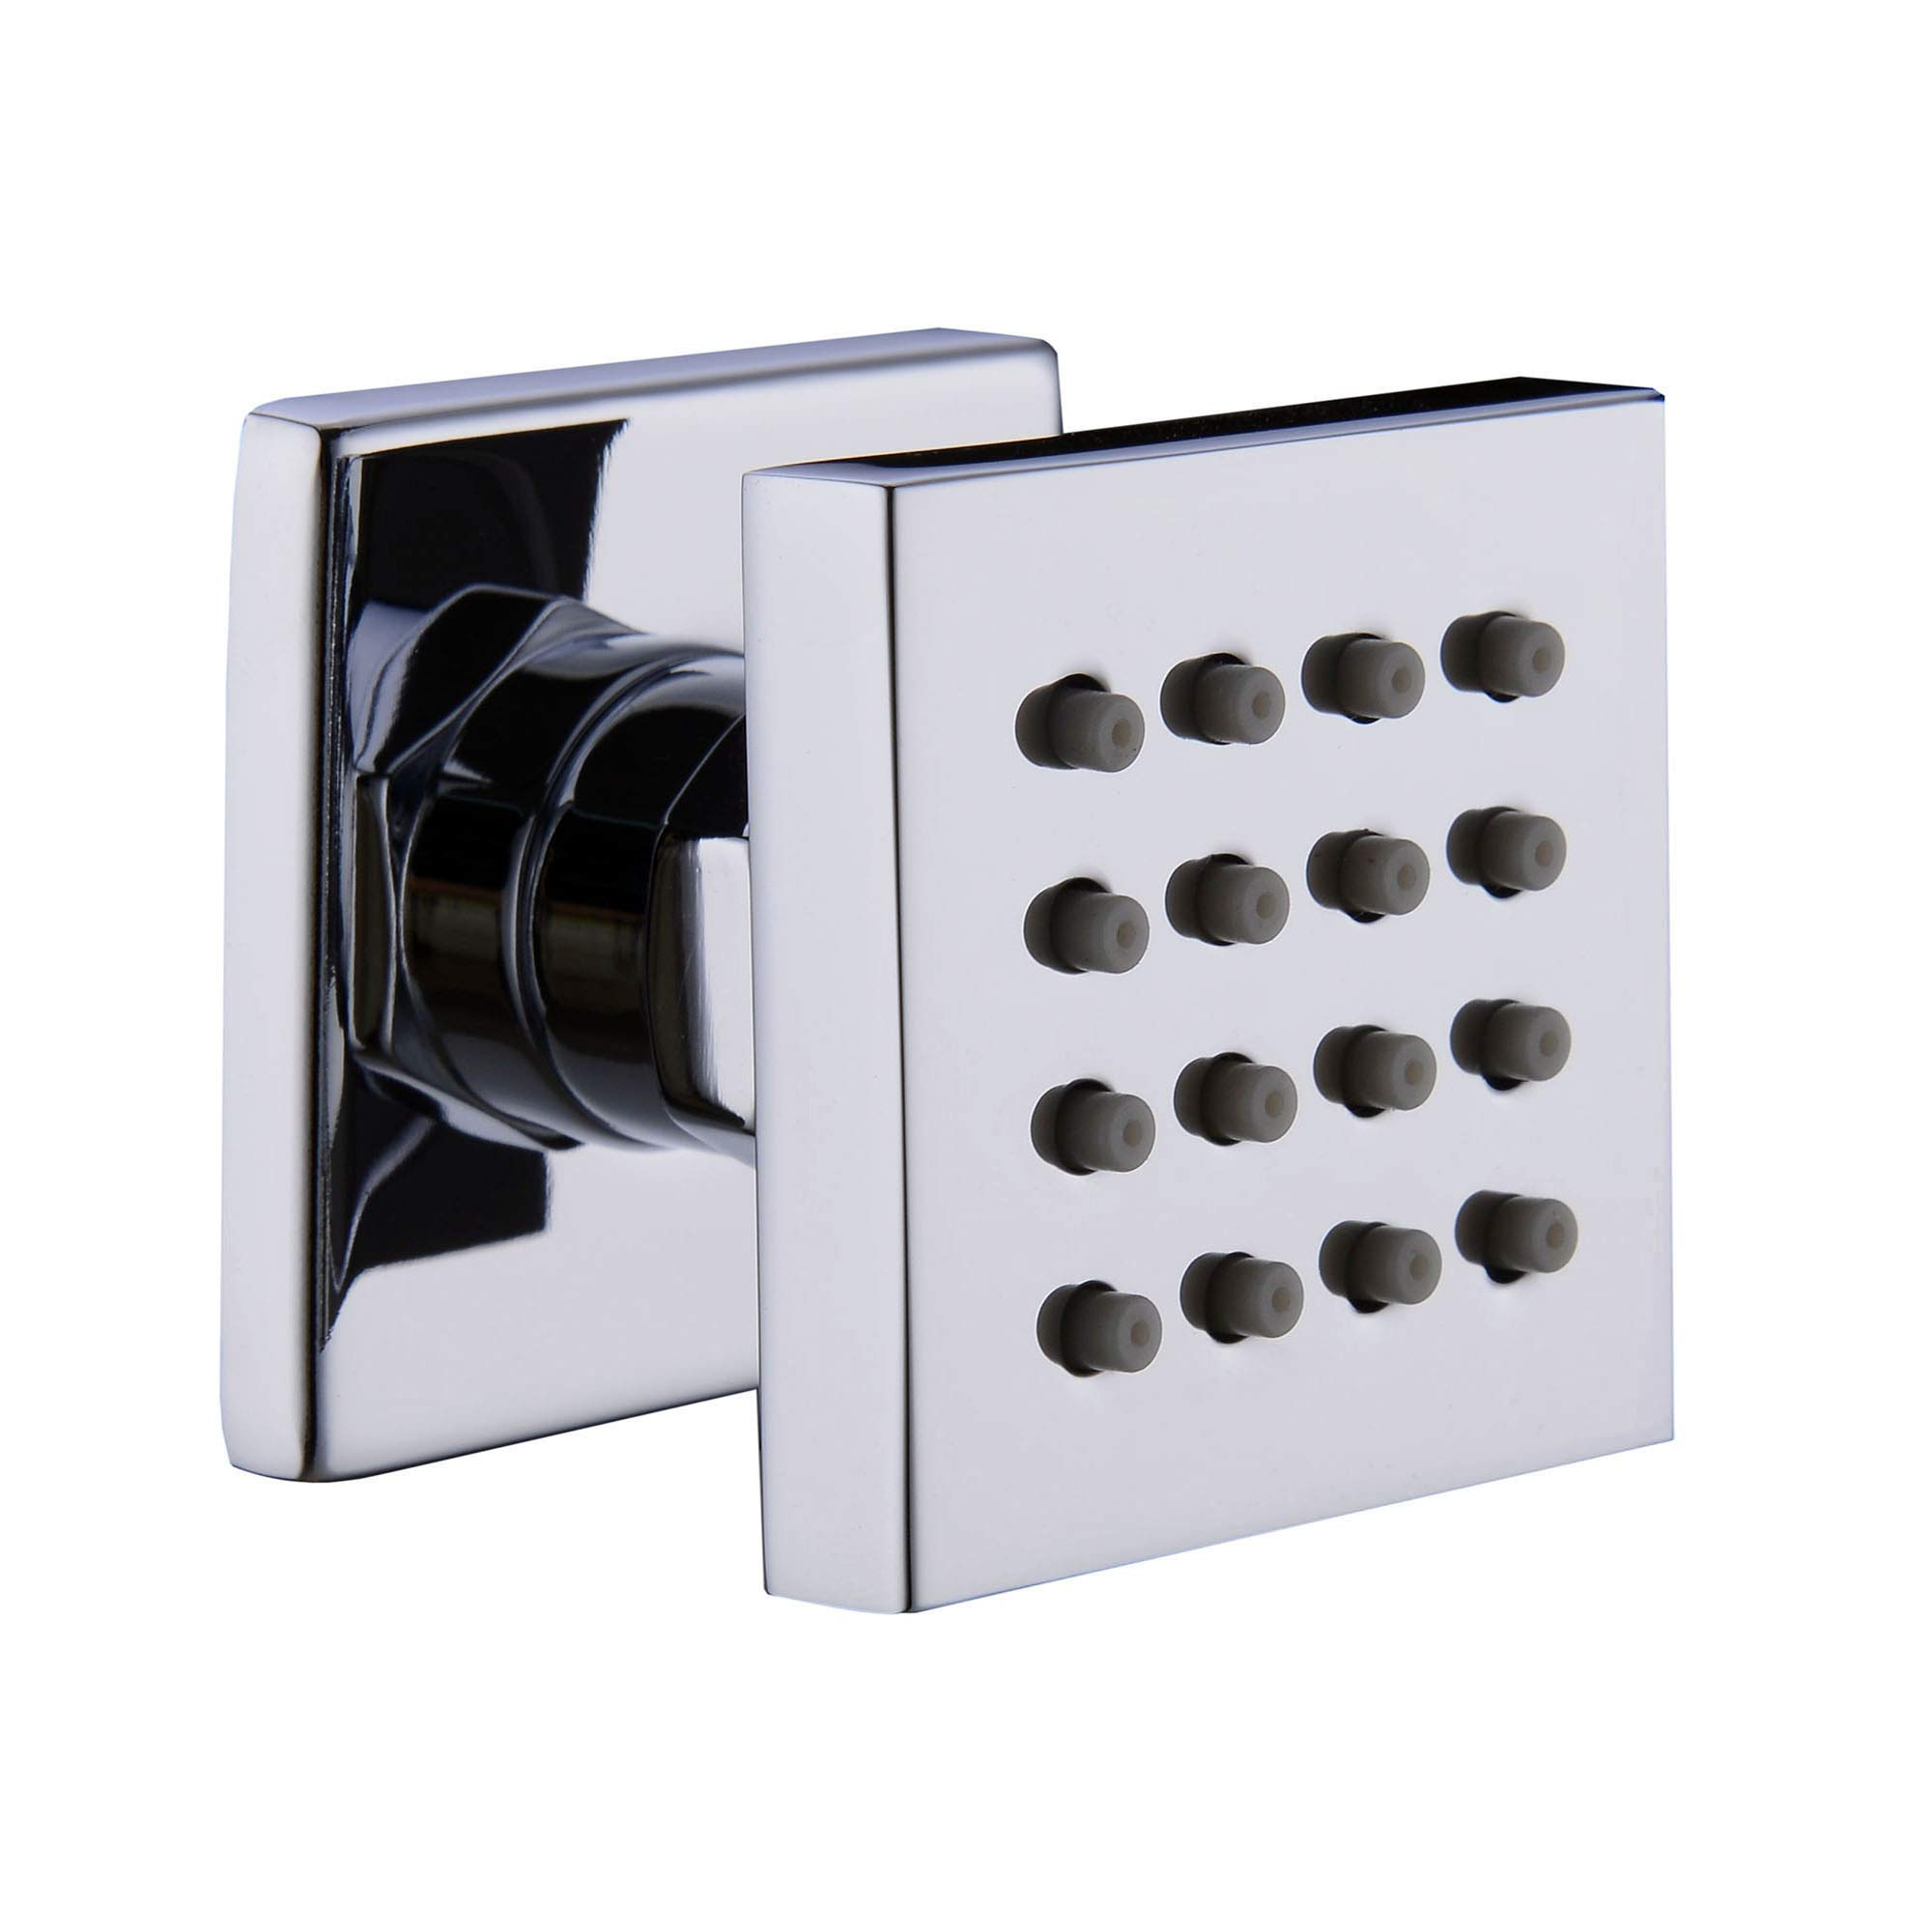 iOrange Square Solid Brass Shower Body Sprays Massage with Chrome Finish Spa Jets Sets Water Saving in Wall Bathroom Shower Accessories